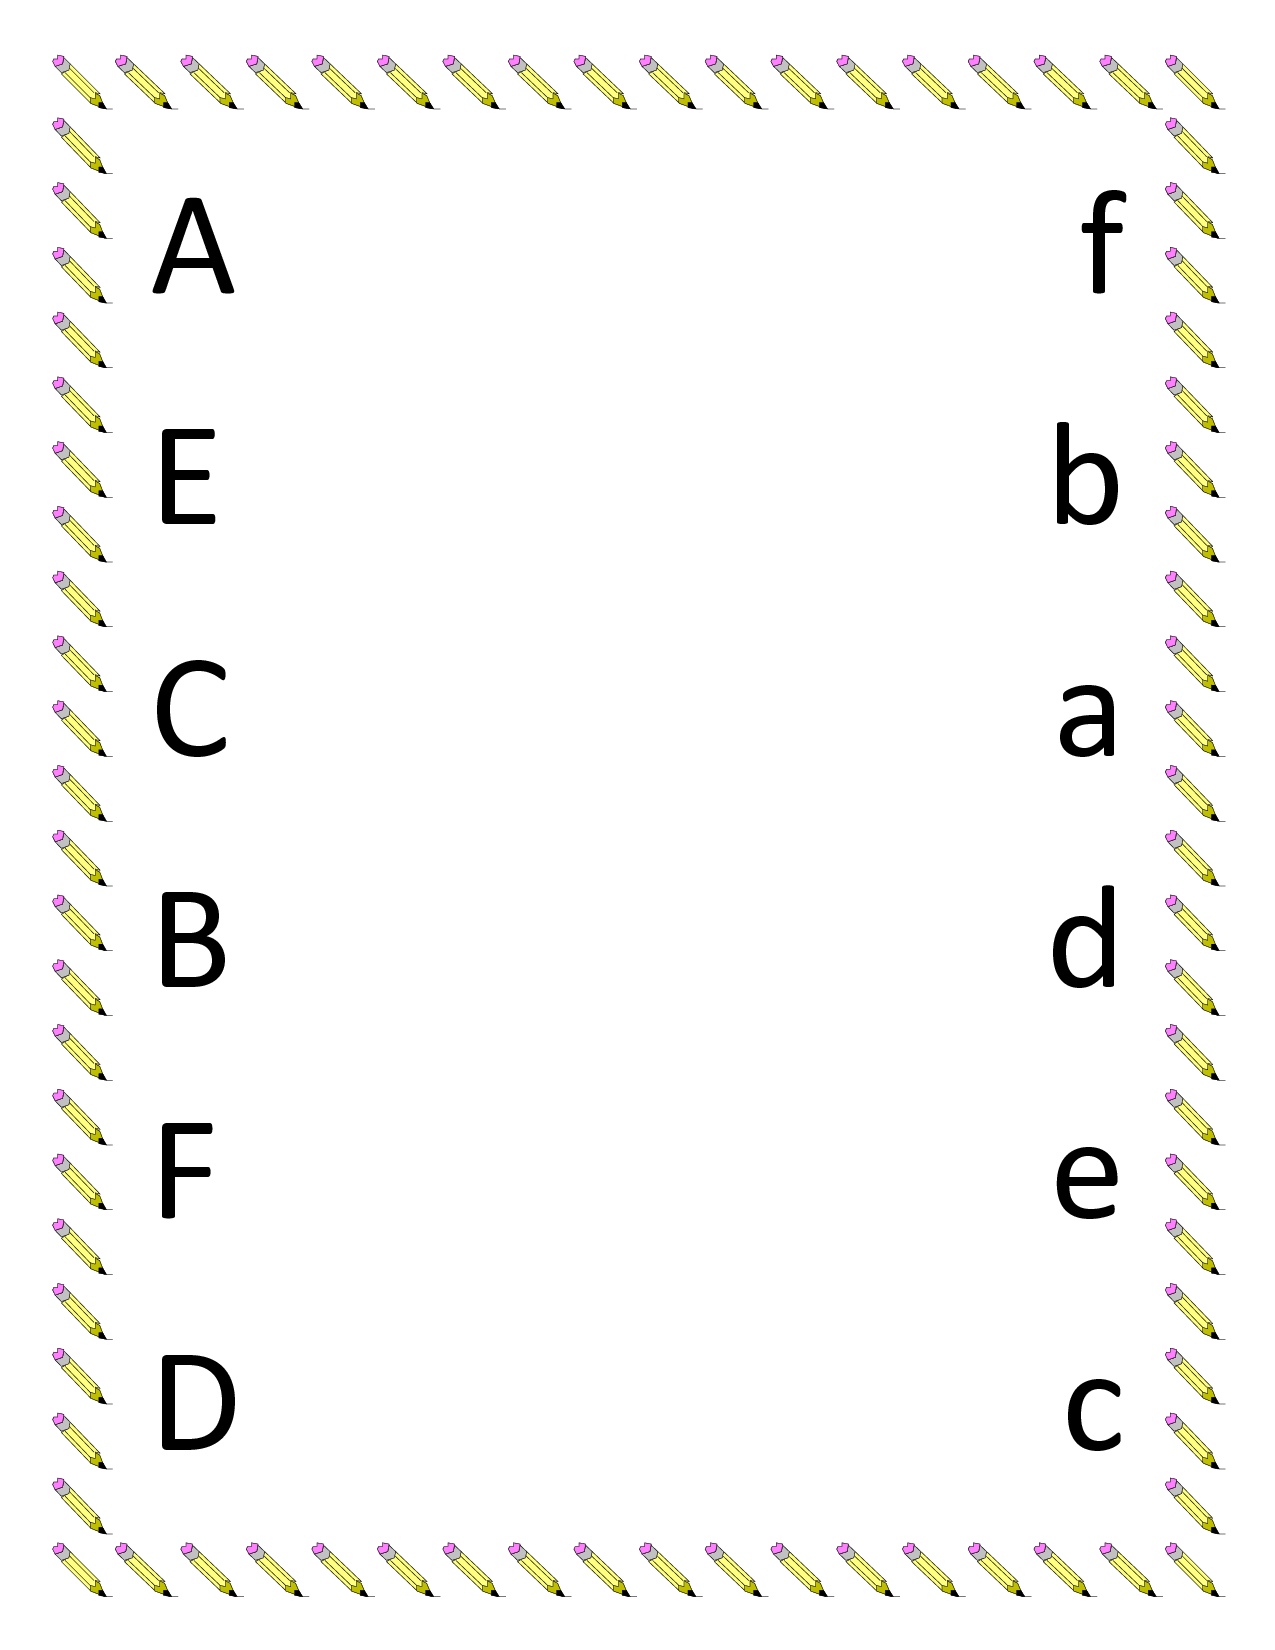 kindergarten worksheets Preschool worksheets – Kindergarten Worksheets Printables